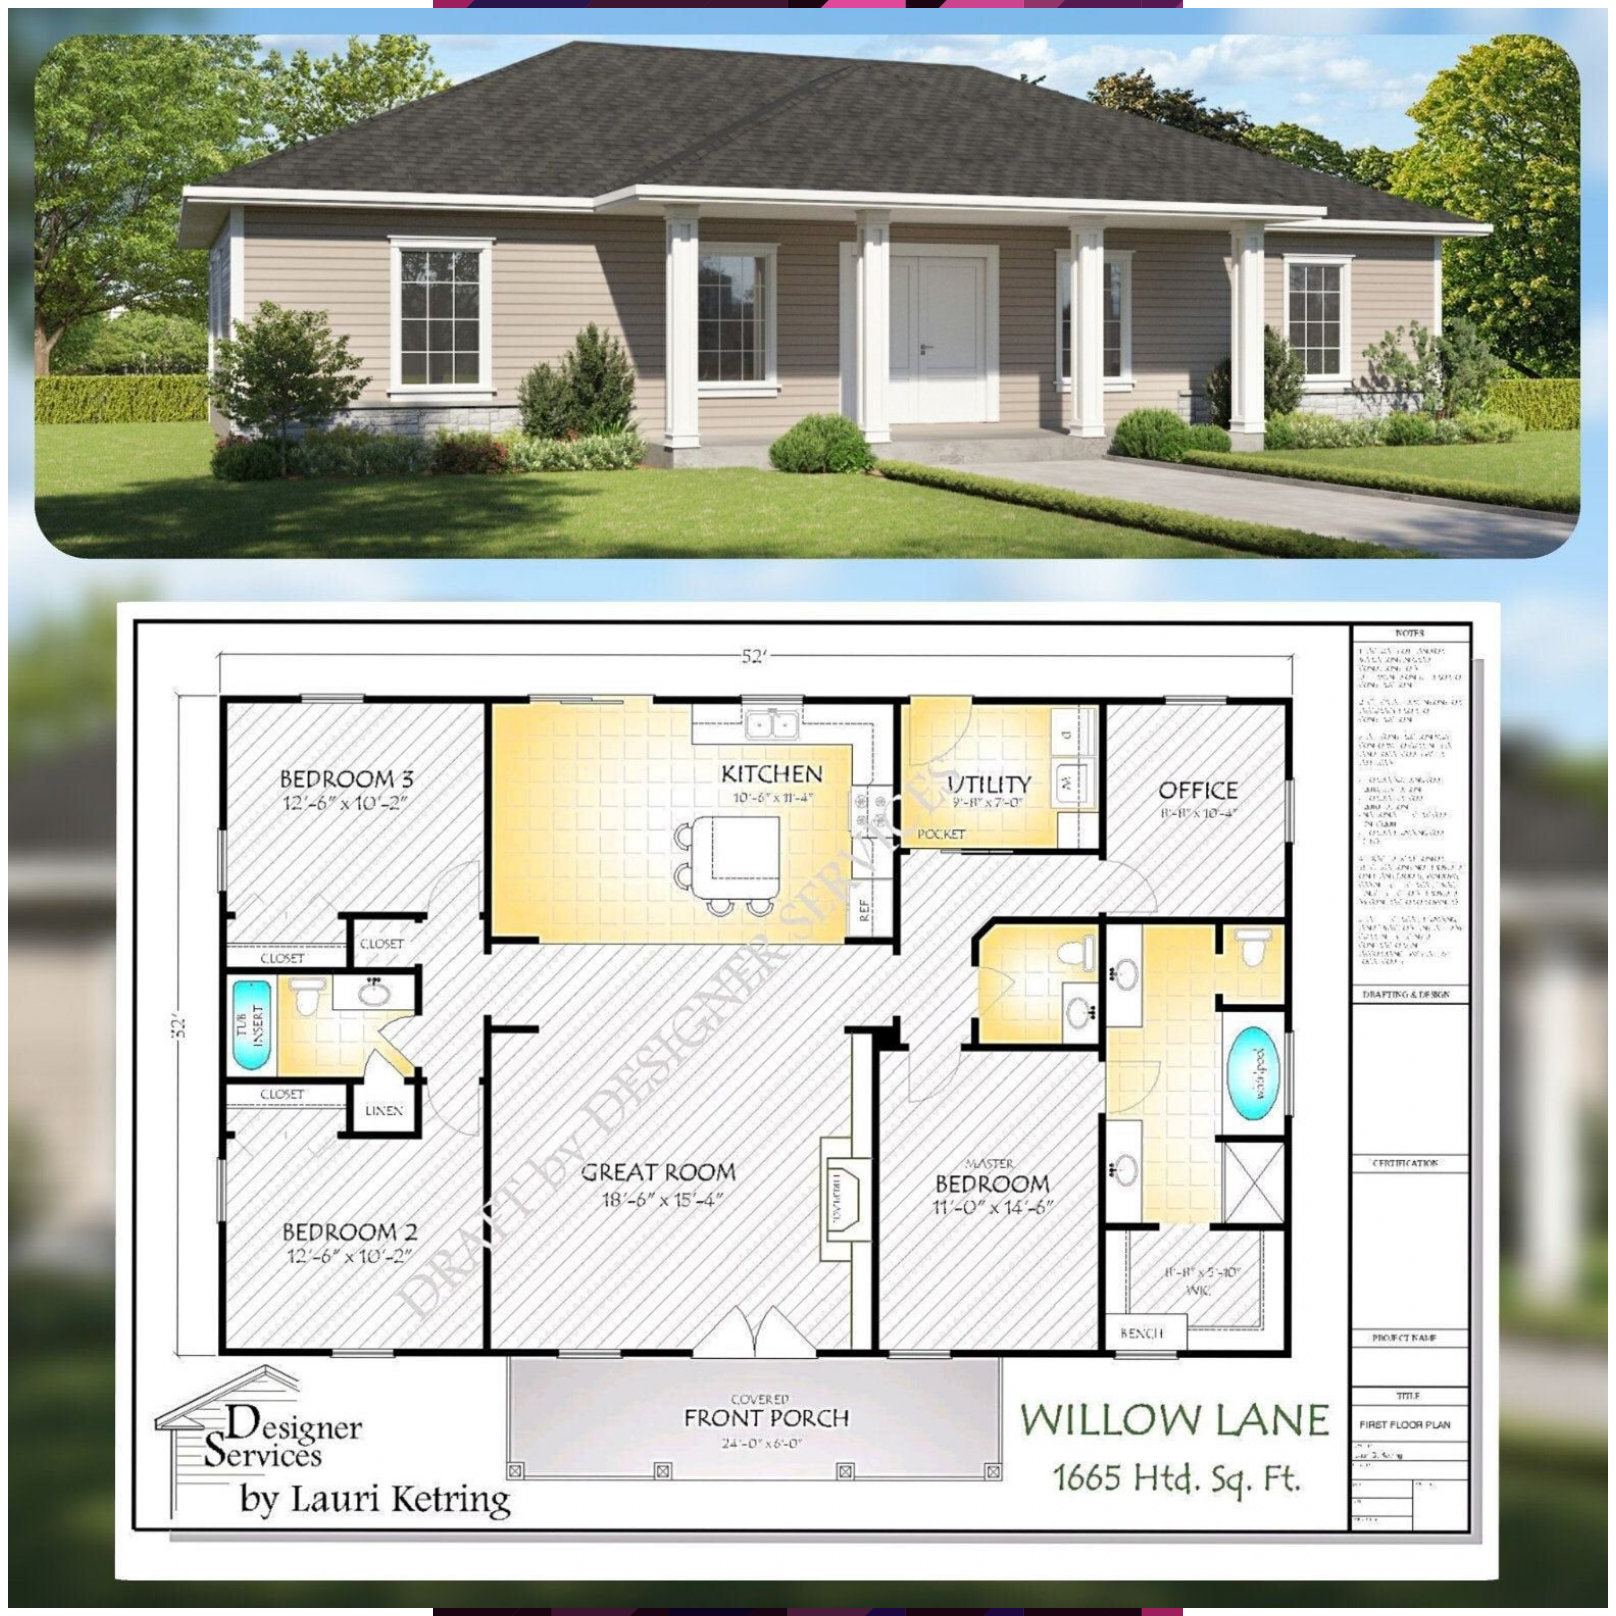 The Willow Lane House Plan Hip Roof Option In 2020 House Plans Hip Roof How To Plan